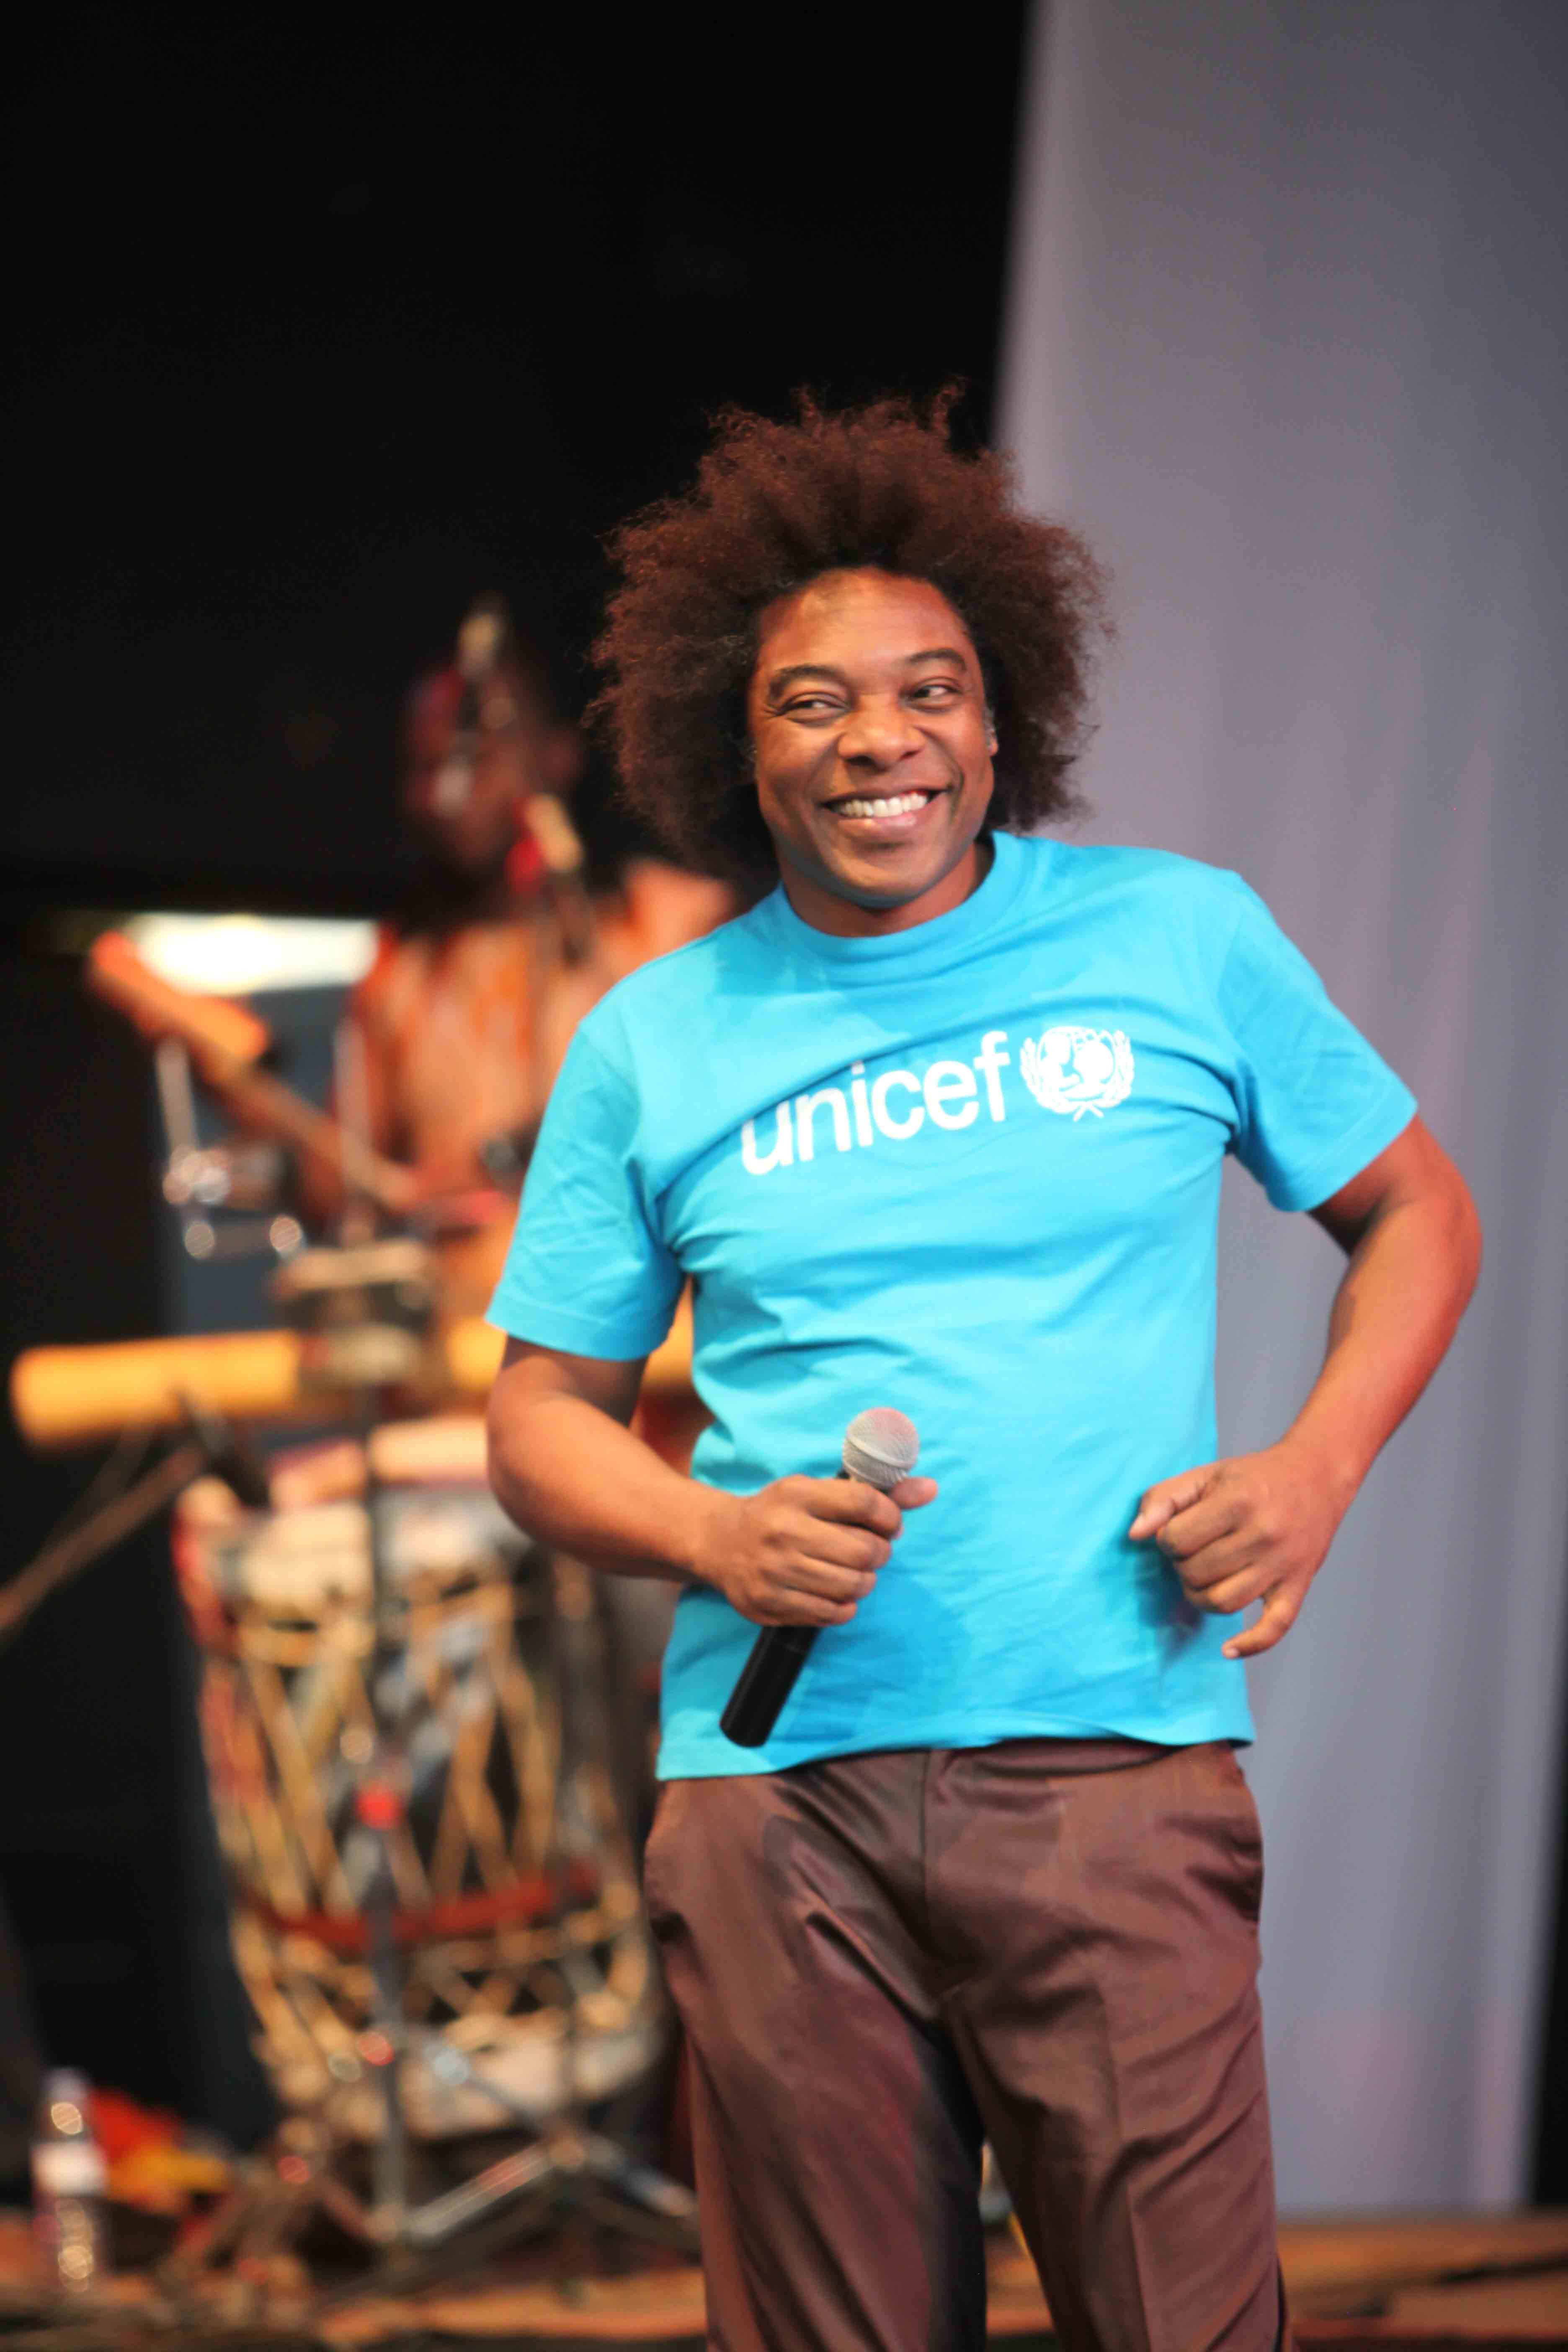 UNICEF Mozambique launches a Facts For Life inspired musical album  - http://www.unicef.org/mozambique/media_14971.html  | Photo: UNICEF Mozambique/2014/Martin Lund